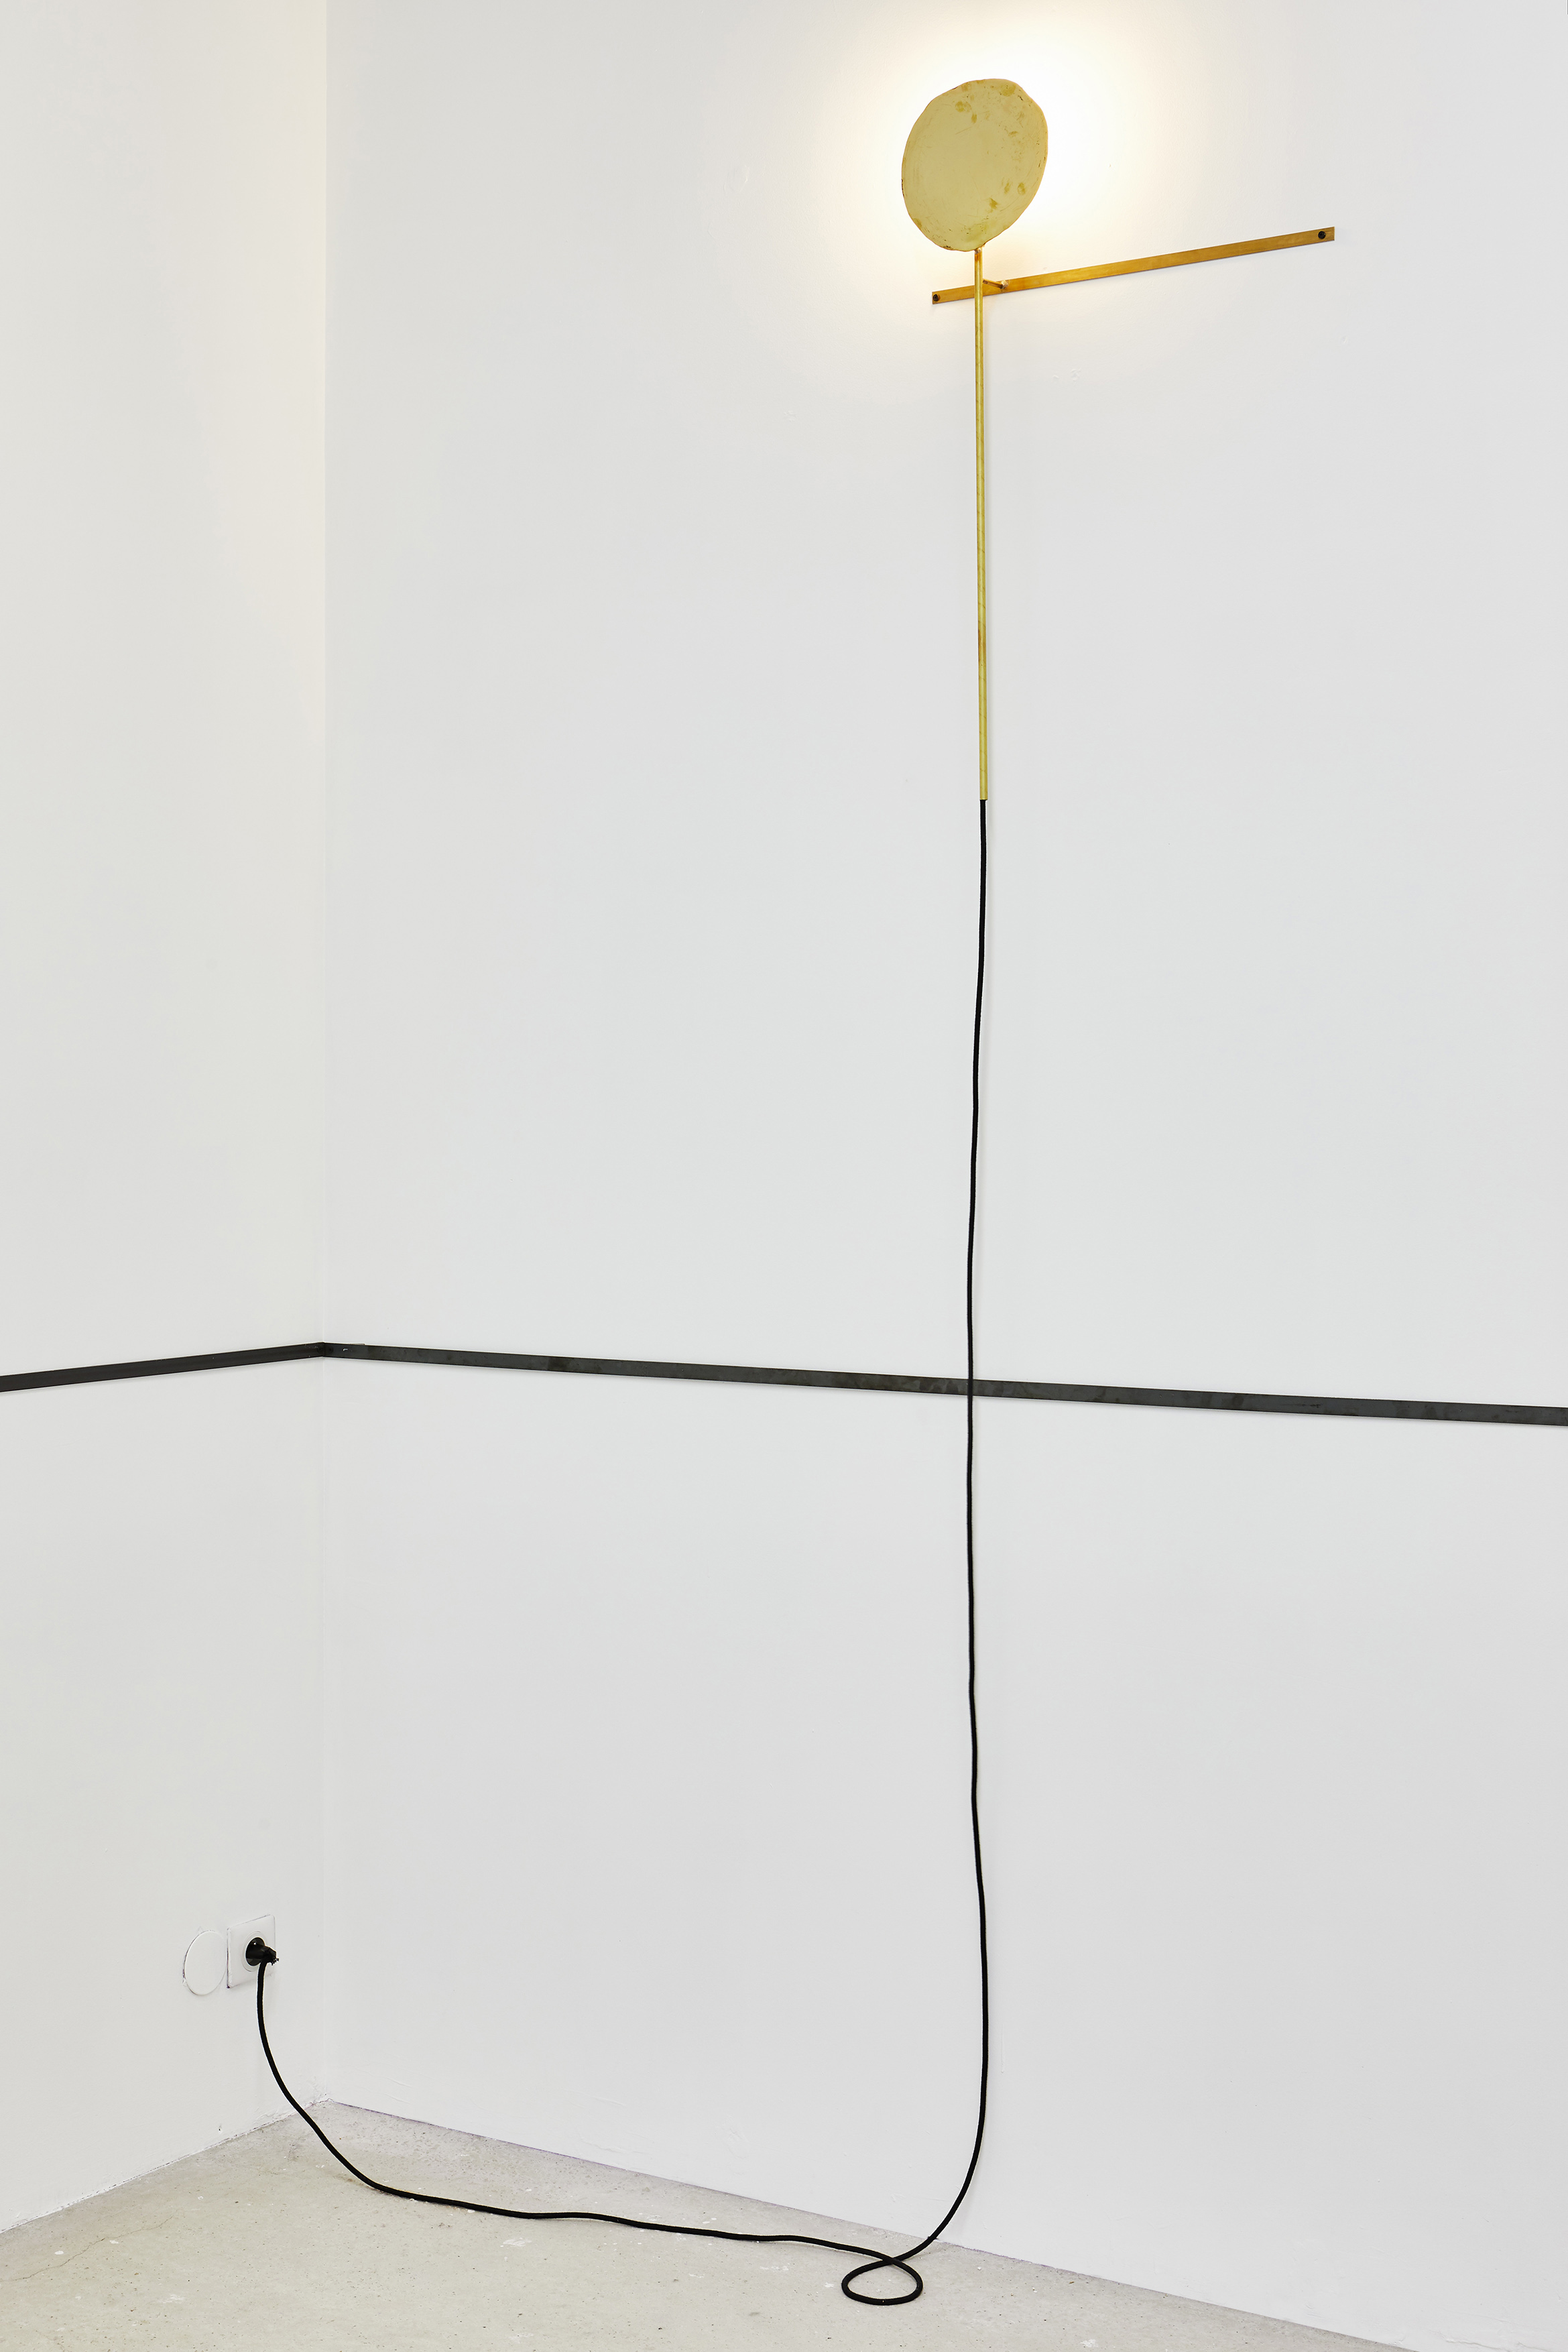 Eclipses , 2019. Laiton, ampoule, cable